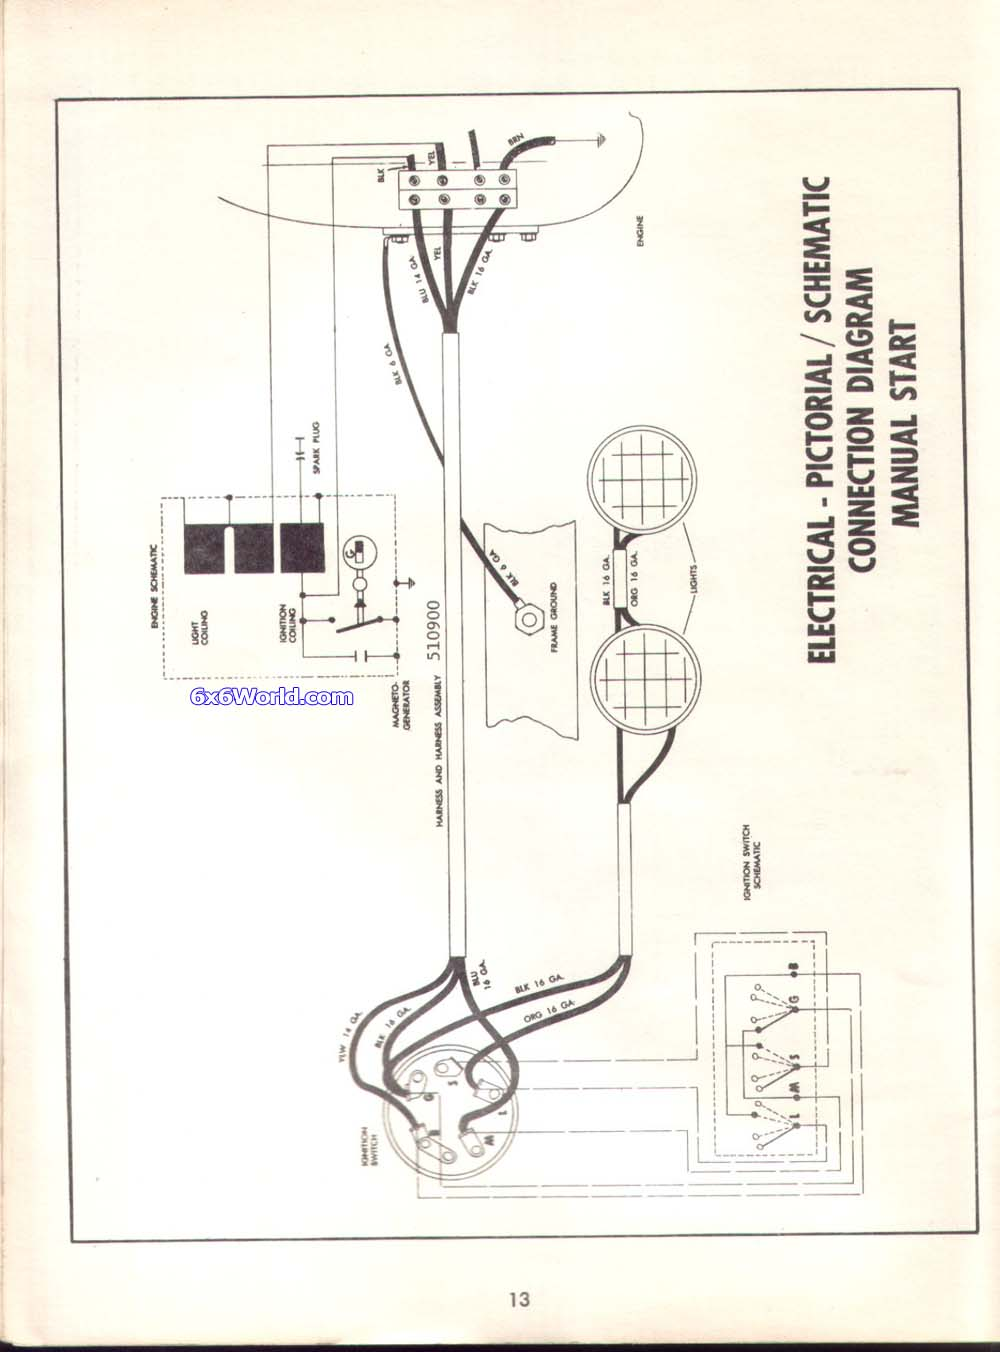 Polaris 325 Magnum Parts Diagram Electrical Wiring Schematic For 2000 Manual 2002